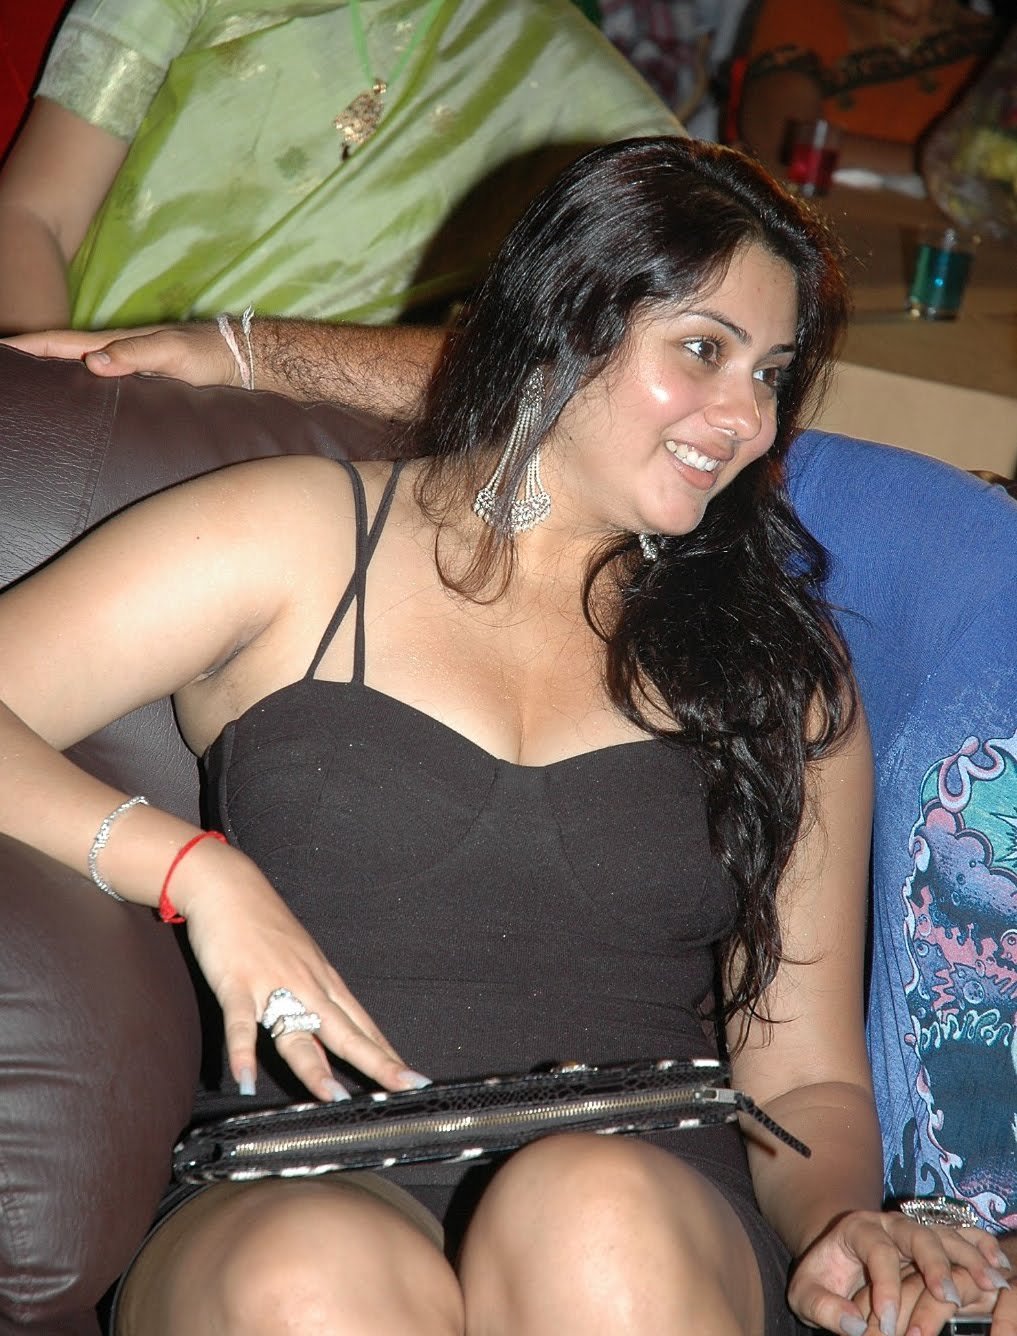 http://2.bp.blogspot.com/_ThFsiAar9vU/TDBF_Bx_ppI/AAAAAAAAC-w/jofQmYlBD_E/s1600/Namitha+Cleavage+Thighs+Armpit+Sexy+Masala+Bikini+Hot+Spicy+Surat+South+Indian+Tamil+Malayalam+Telugu+Hindi+Movie+Film+Actress+Upskirt+Latest+Photo+Gallery+Stills+Pics.jpg